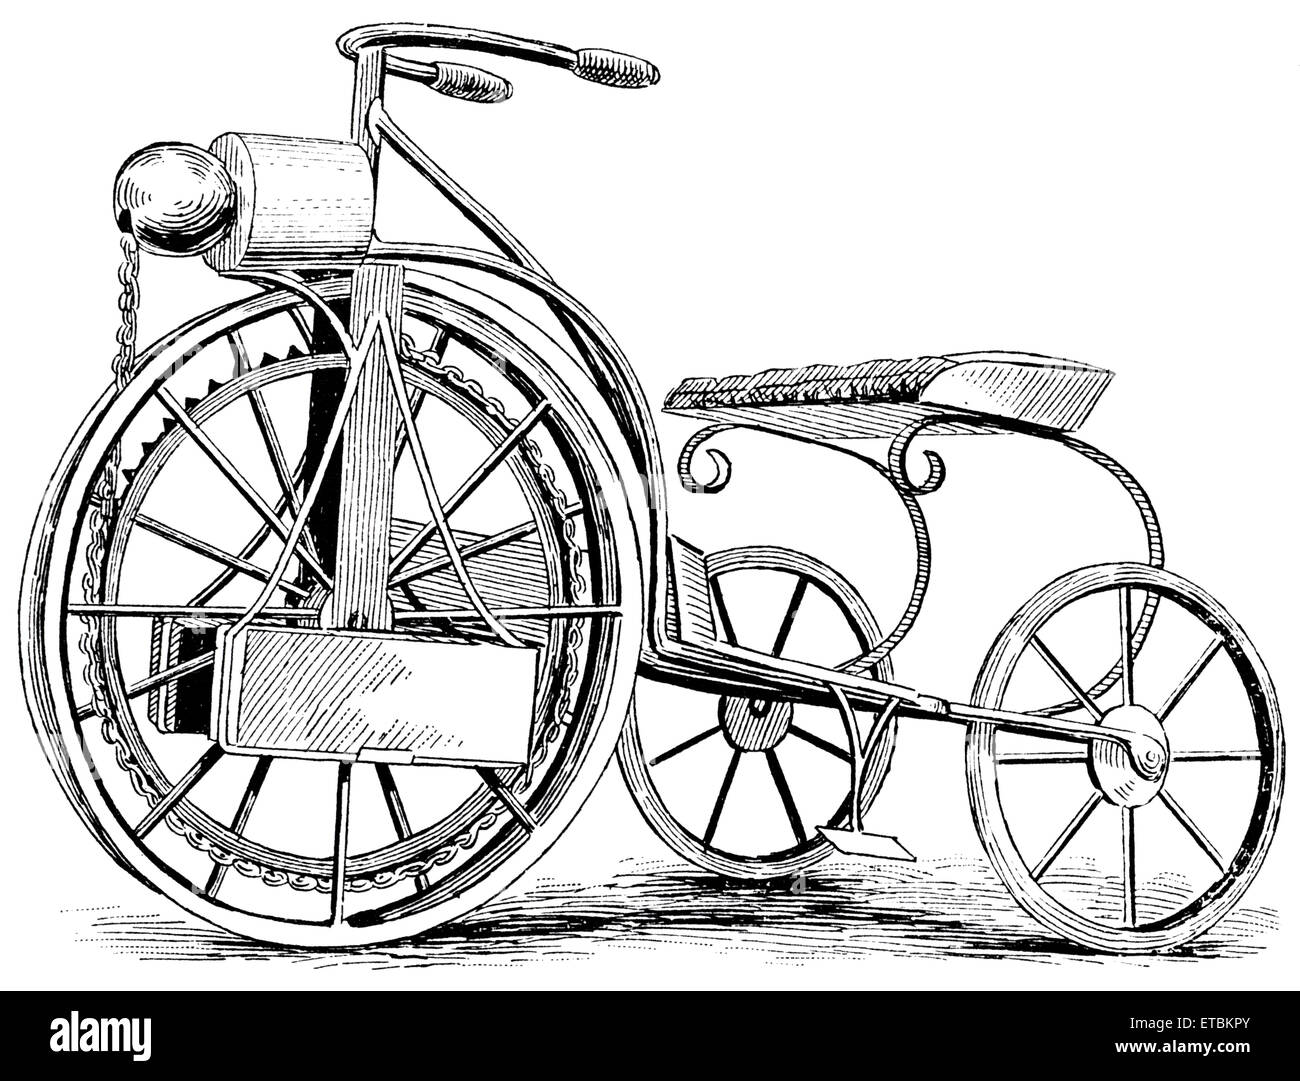 Electric Tricycle, C.H. Barrows, Illustration, circa 1895 - Stock Image